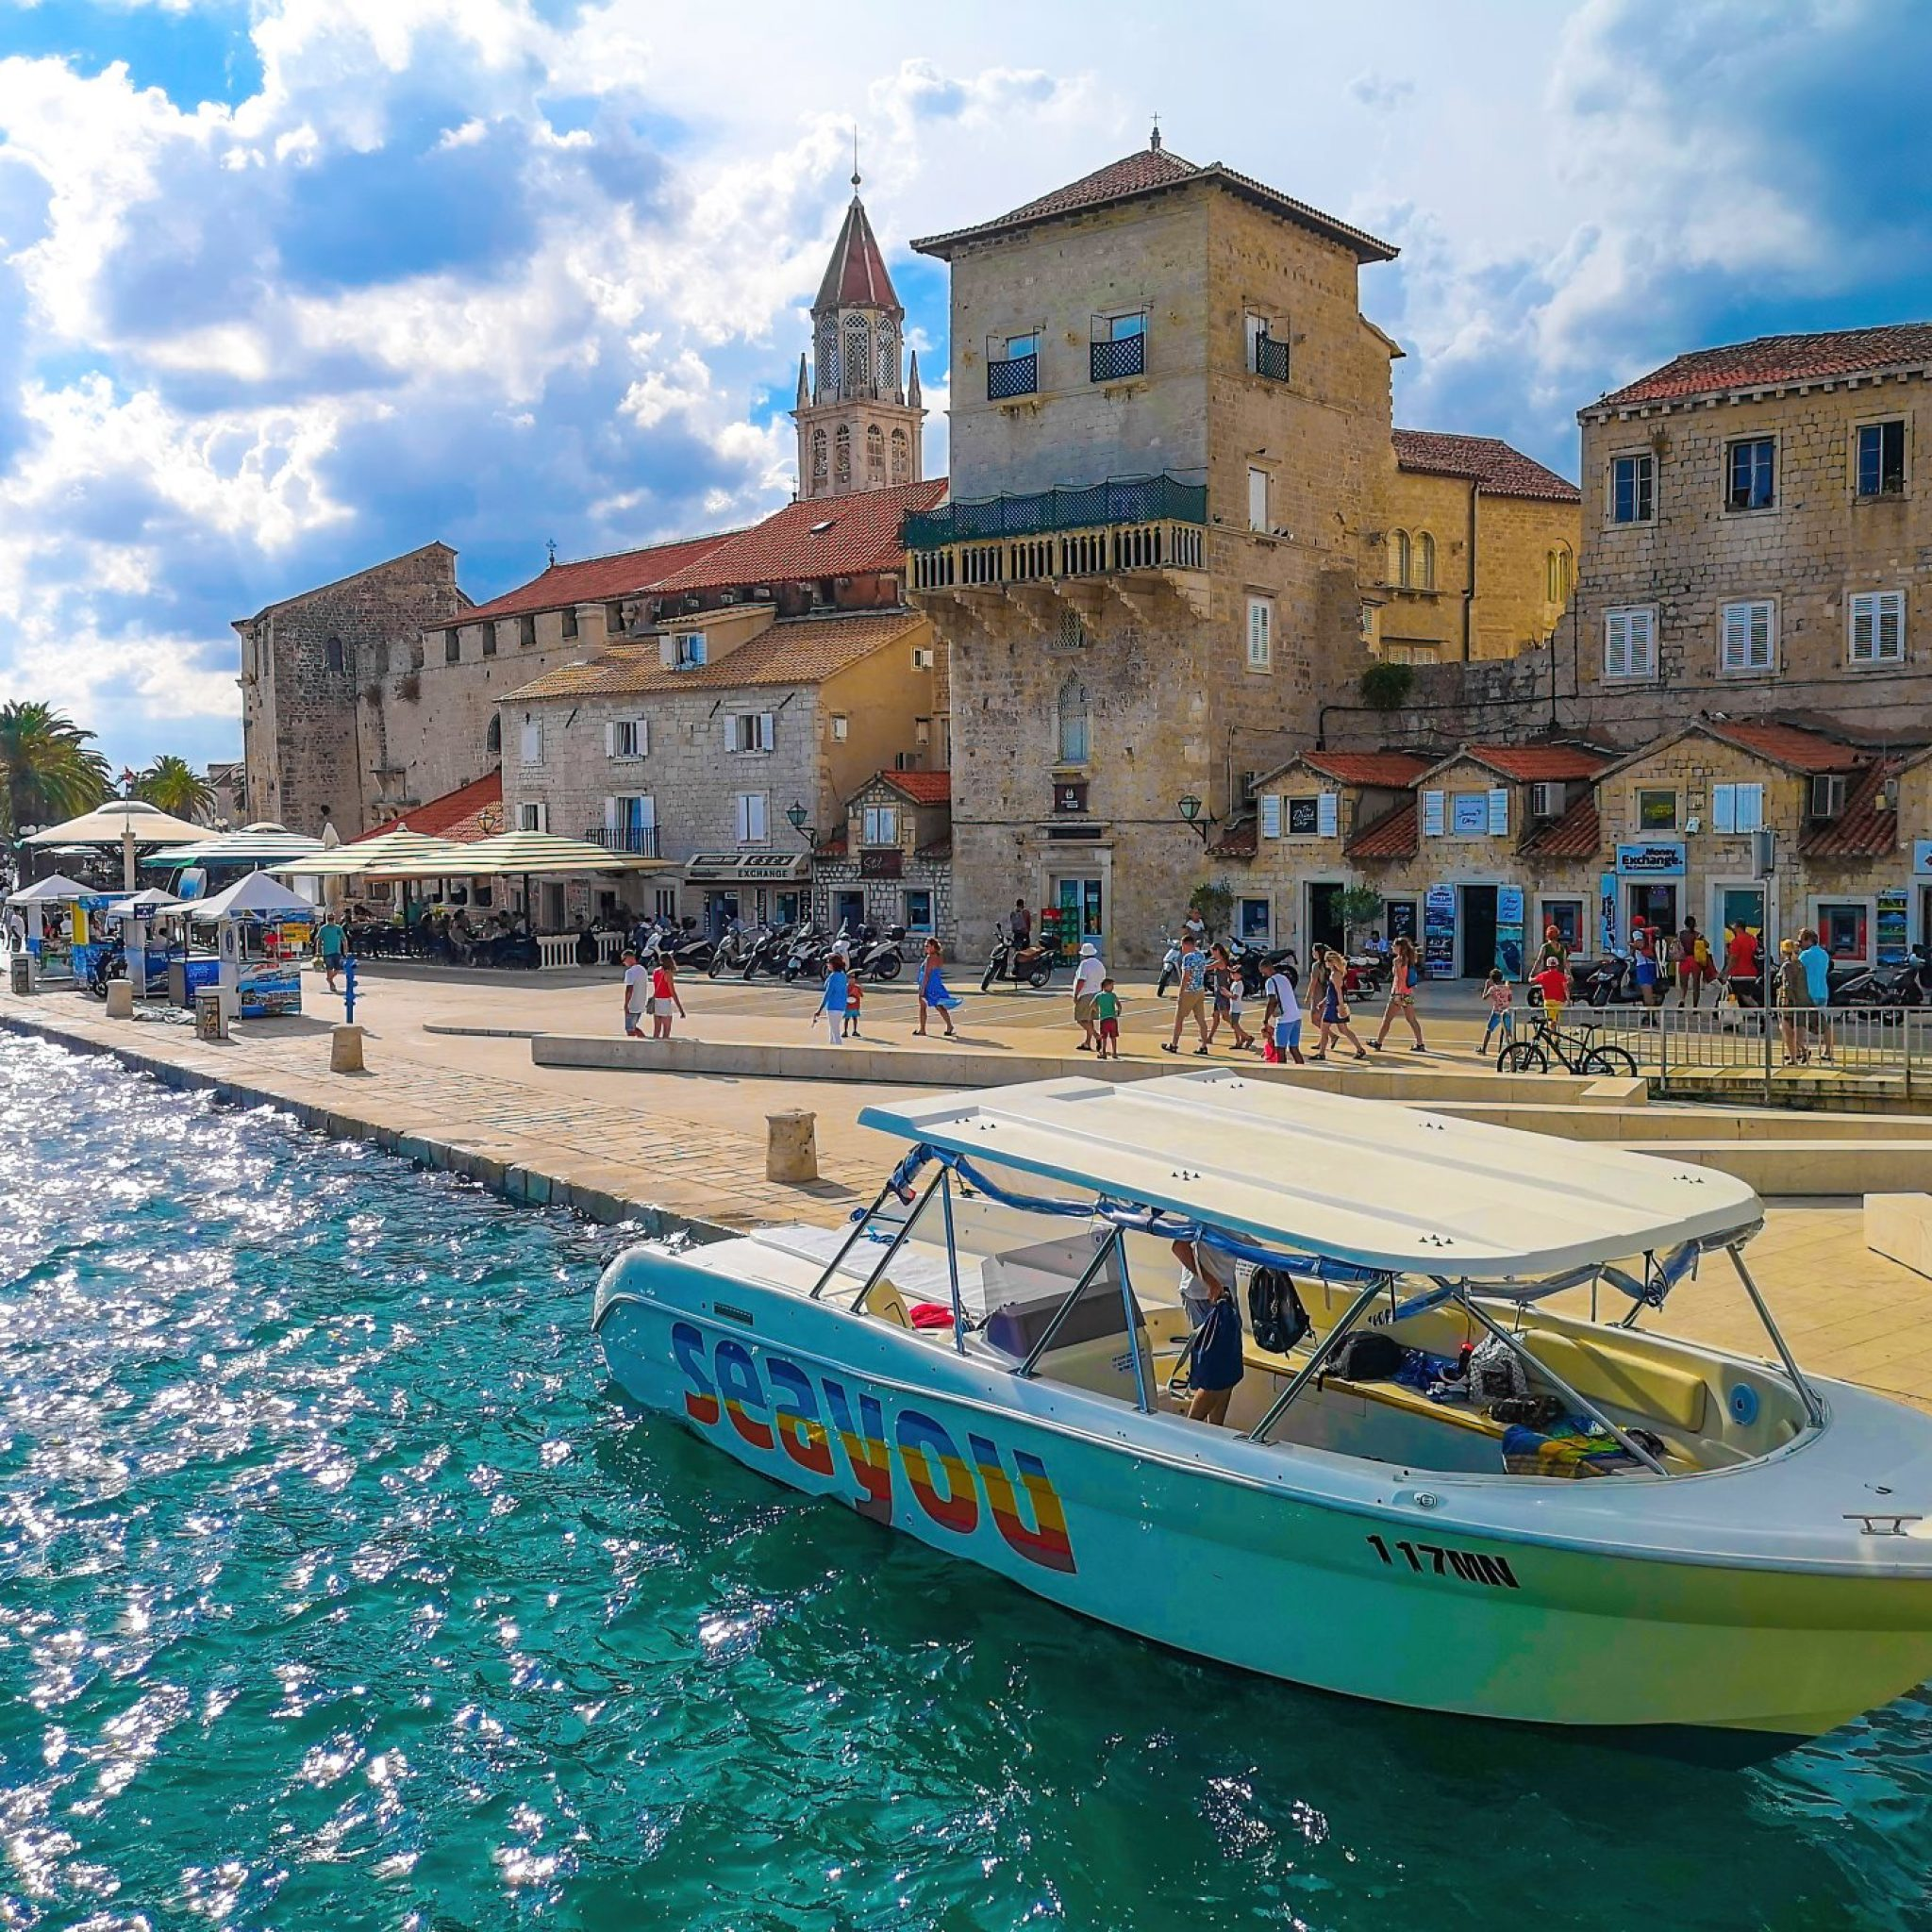 SeaYou boat docked at Trogir town